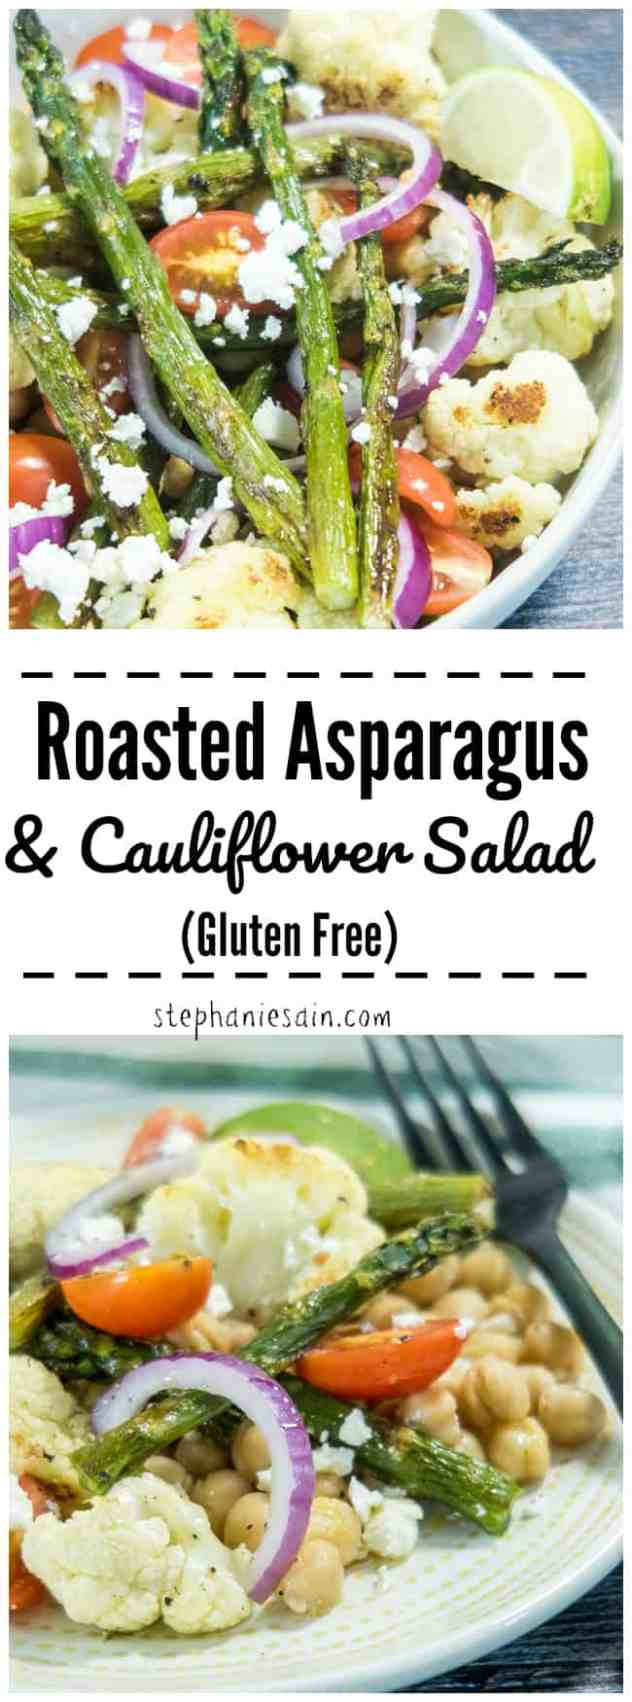 This Roasted Asparagus & Cauliflower Salad is made with tender roasted asparagus, & cauliflower all topped on a bed of chickpeas, tomatoes, & onions. Lightly dressed with lime. An easy one bowl dinner perfect for a quick summer time meal. Gluten Free.